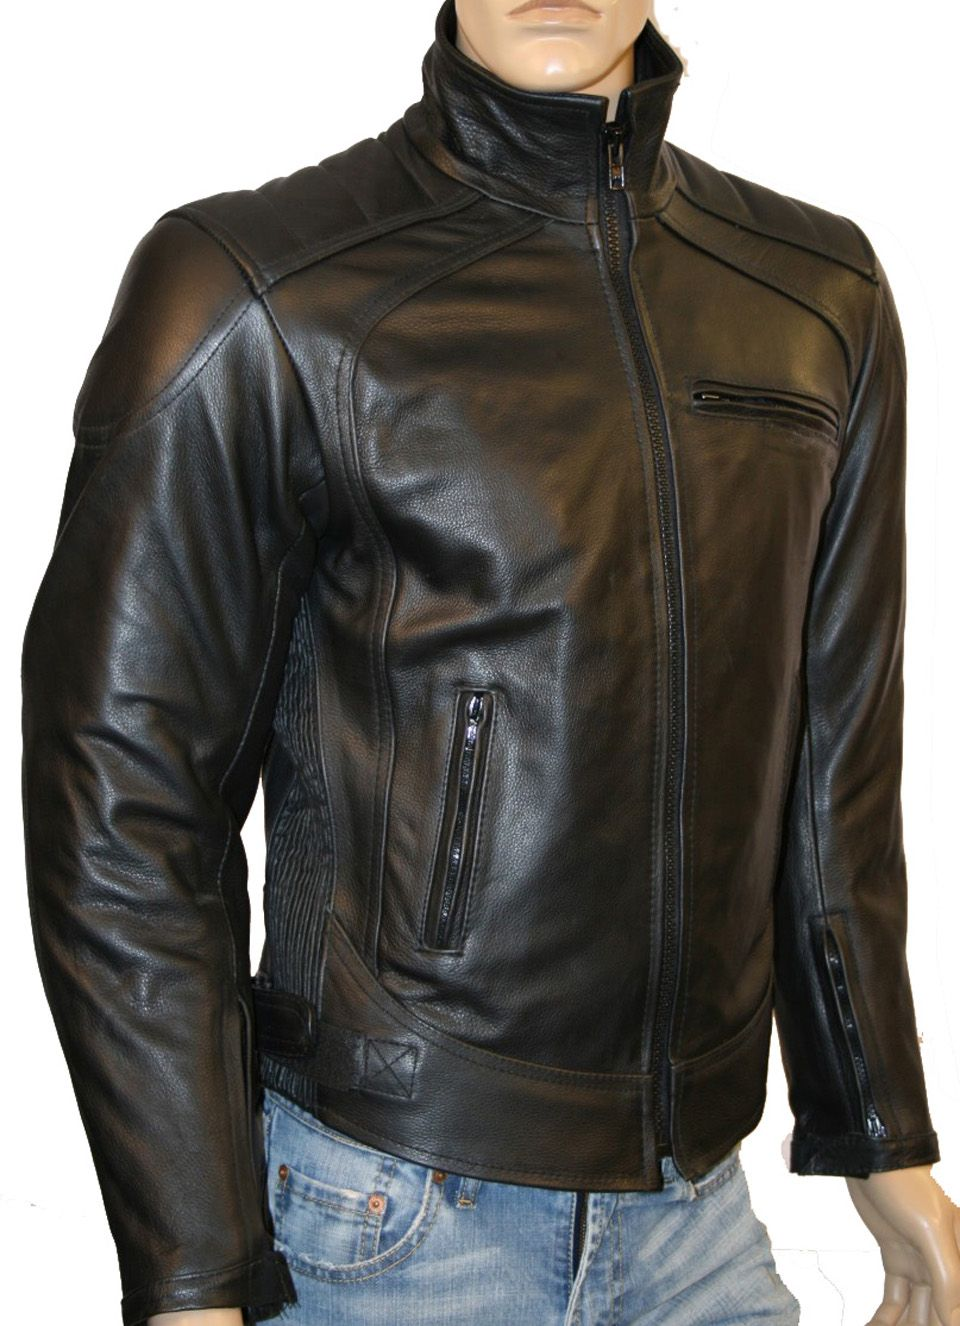 Leather jacket for motorcycle riding - Men S Leather Motorcycle Jackets